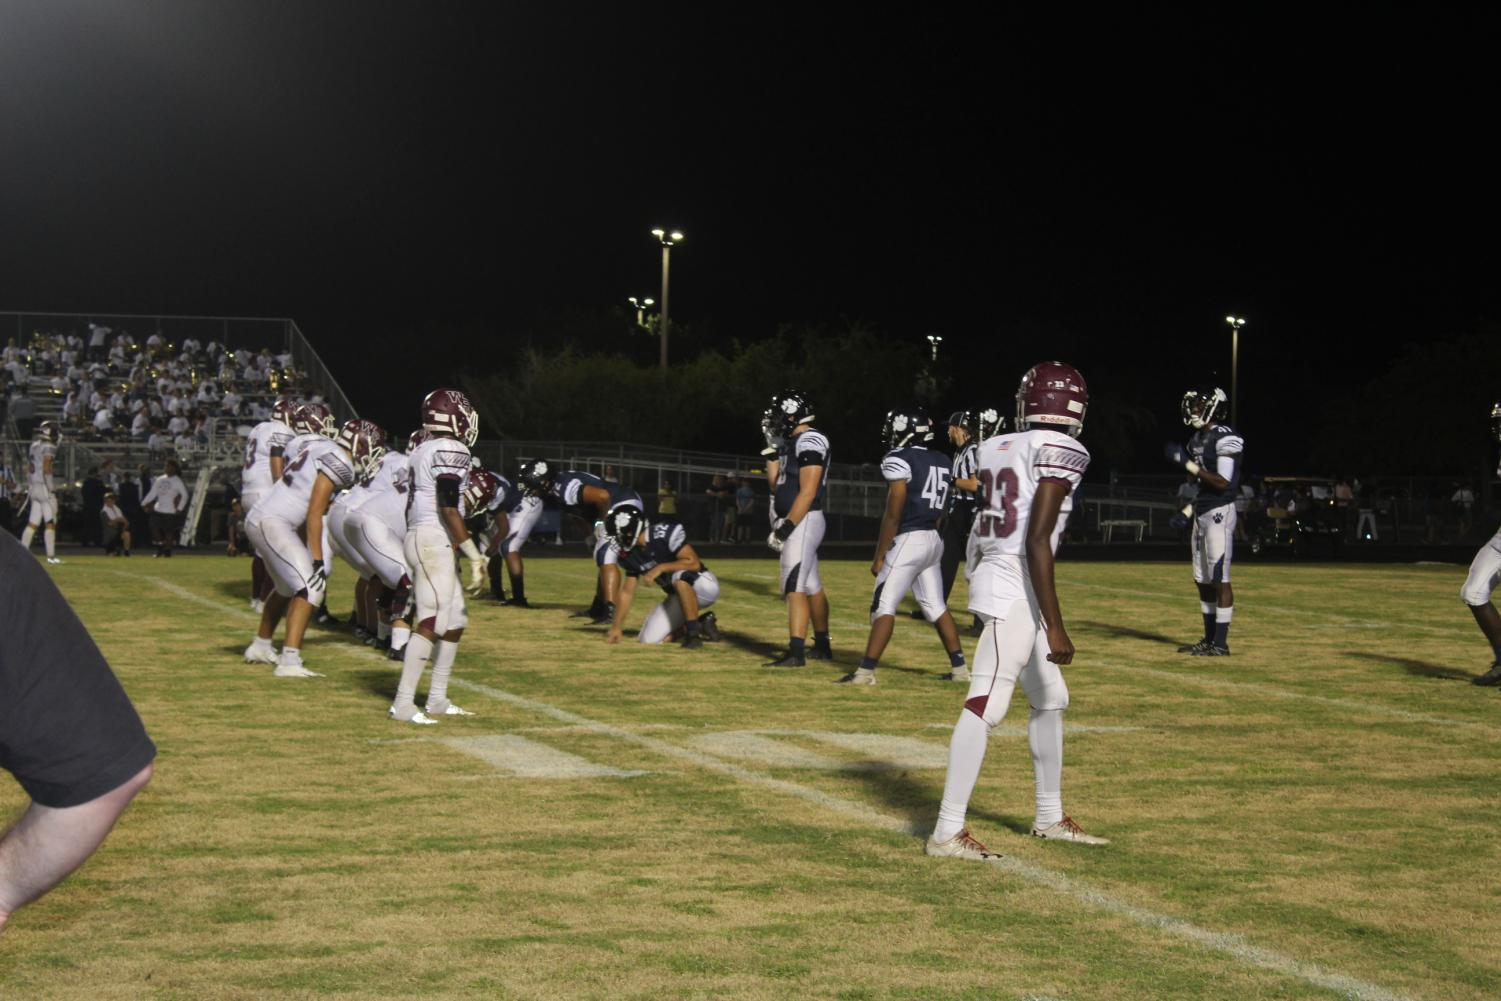 The Bulls lining up on offense, looking to score.